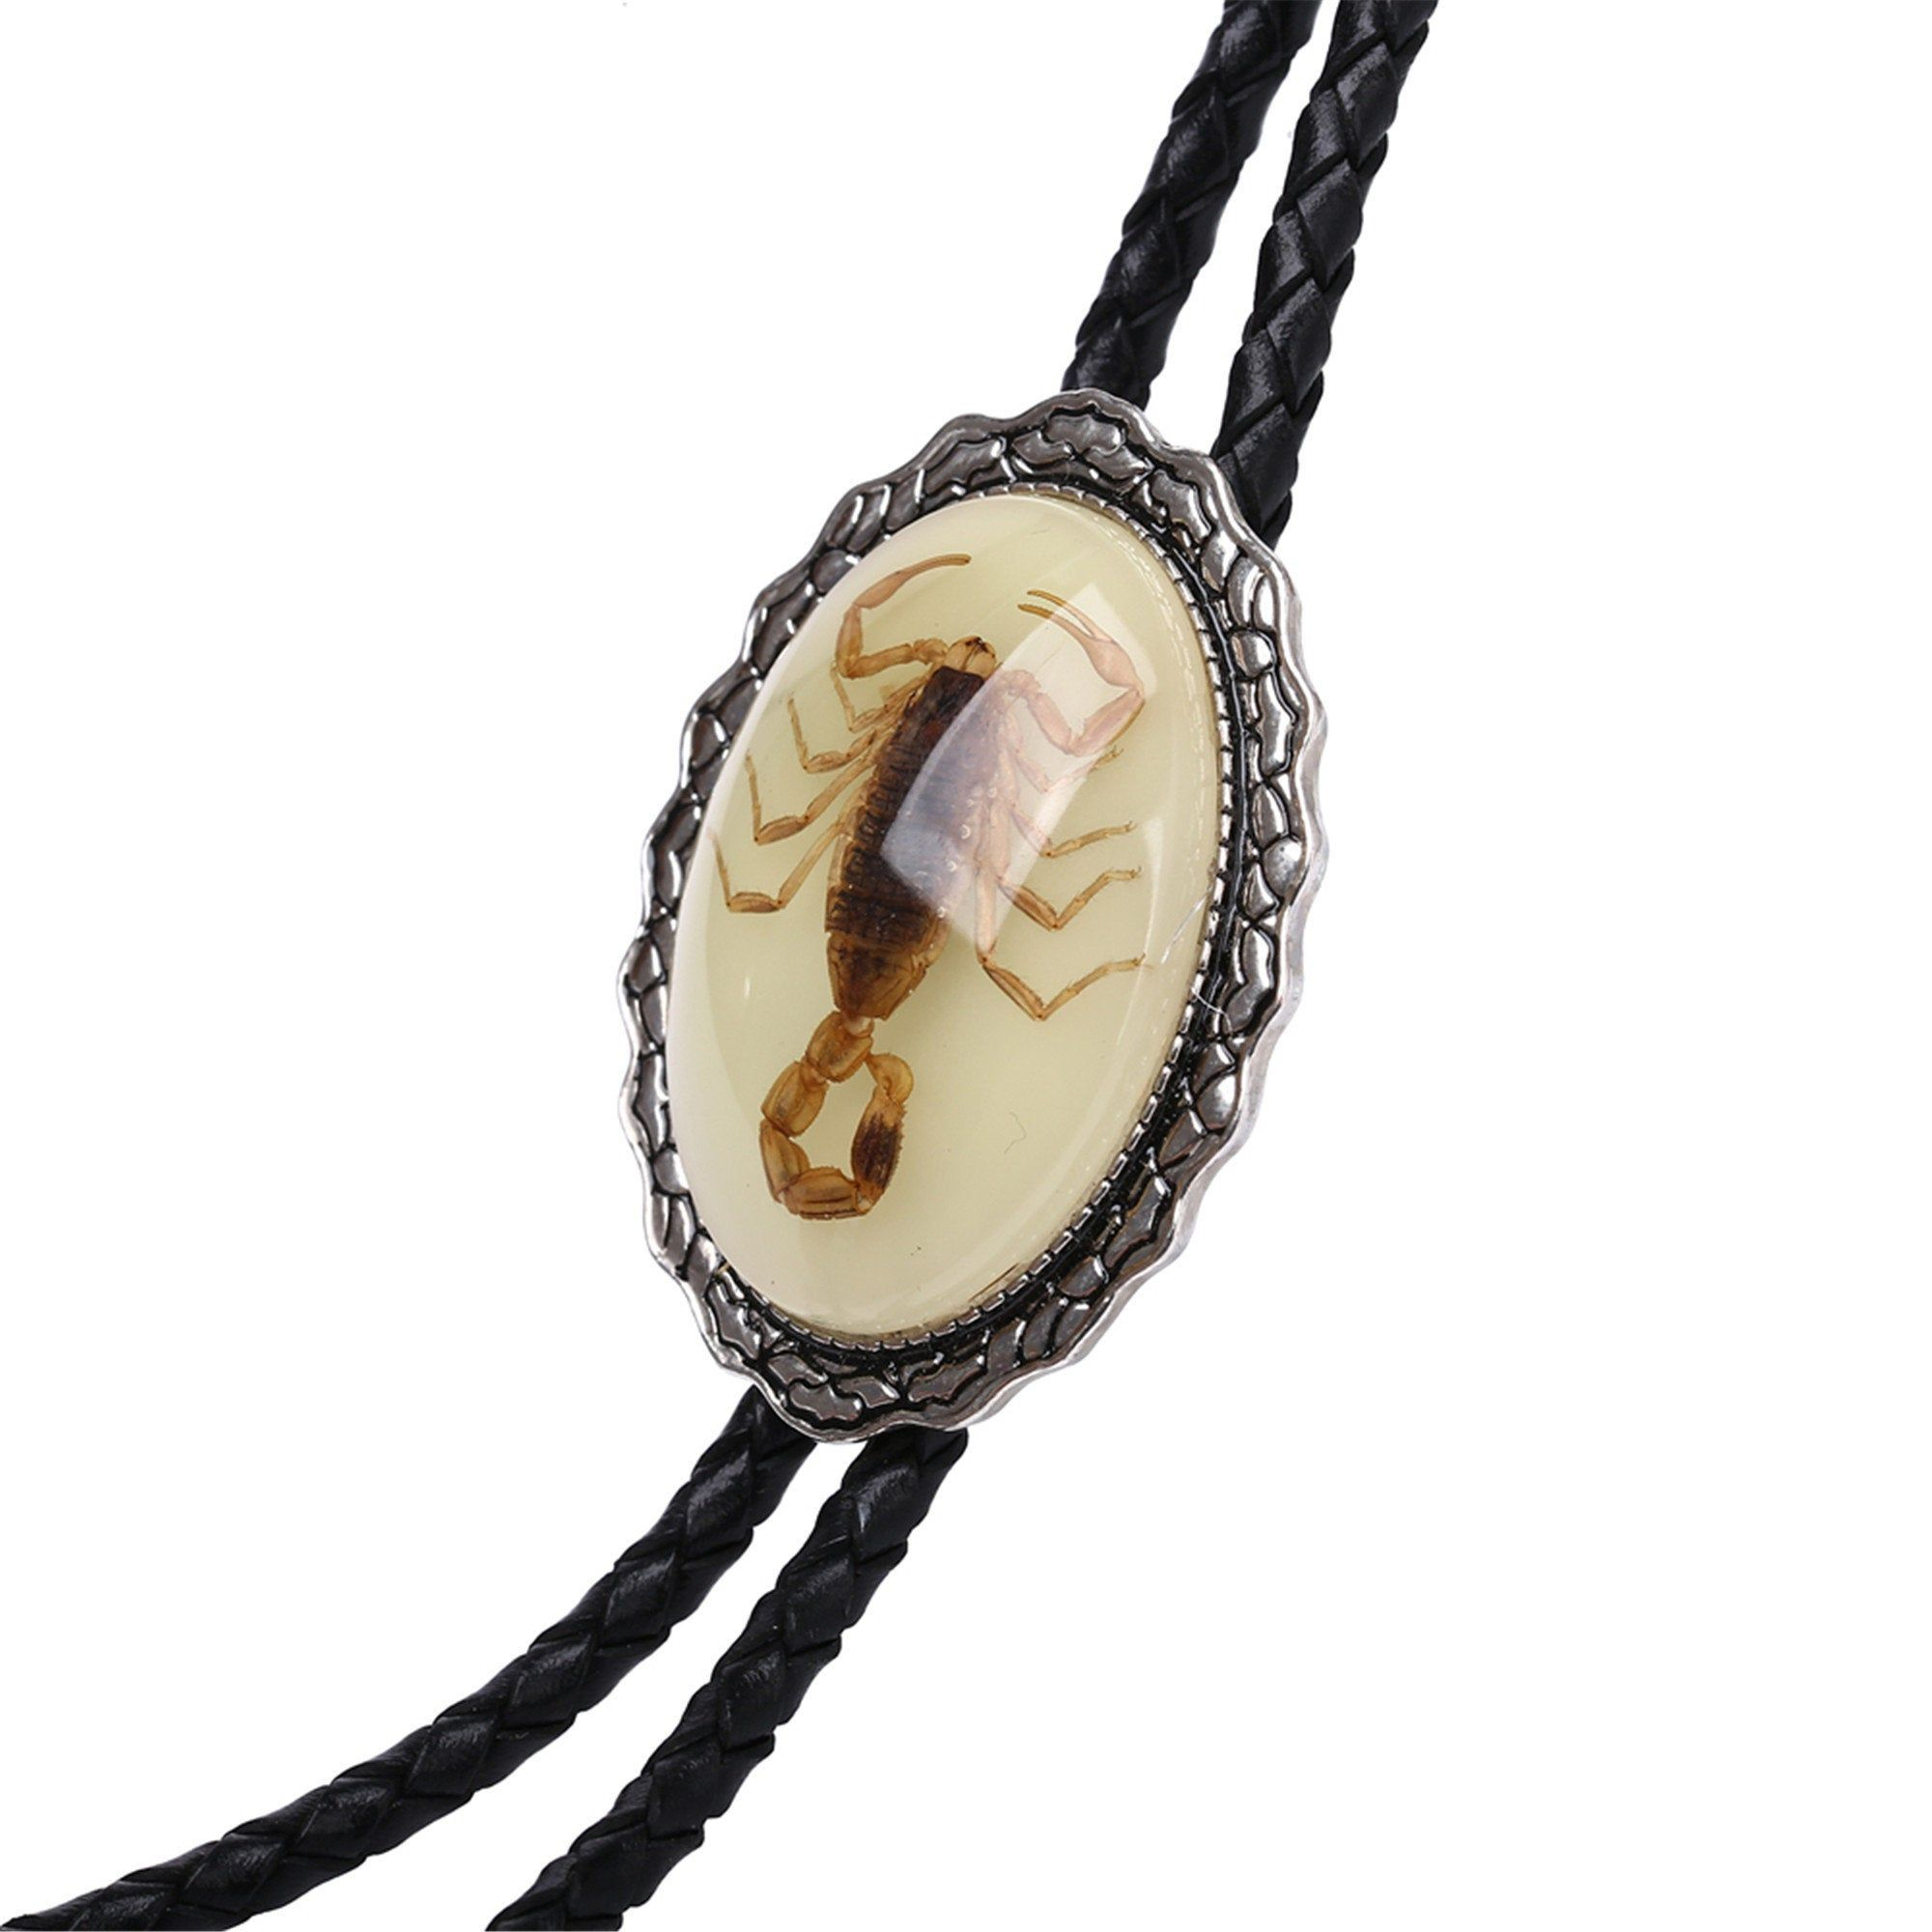 HORSE LOVER snap button rope pendant w//steel necklace gift for women